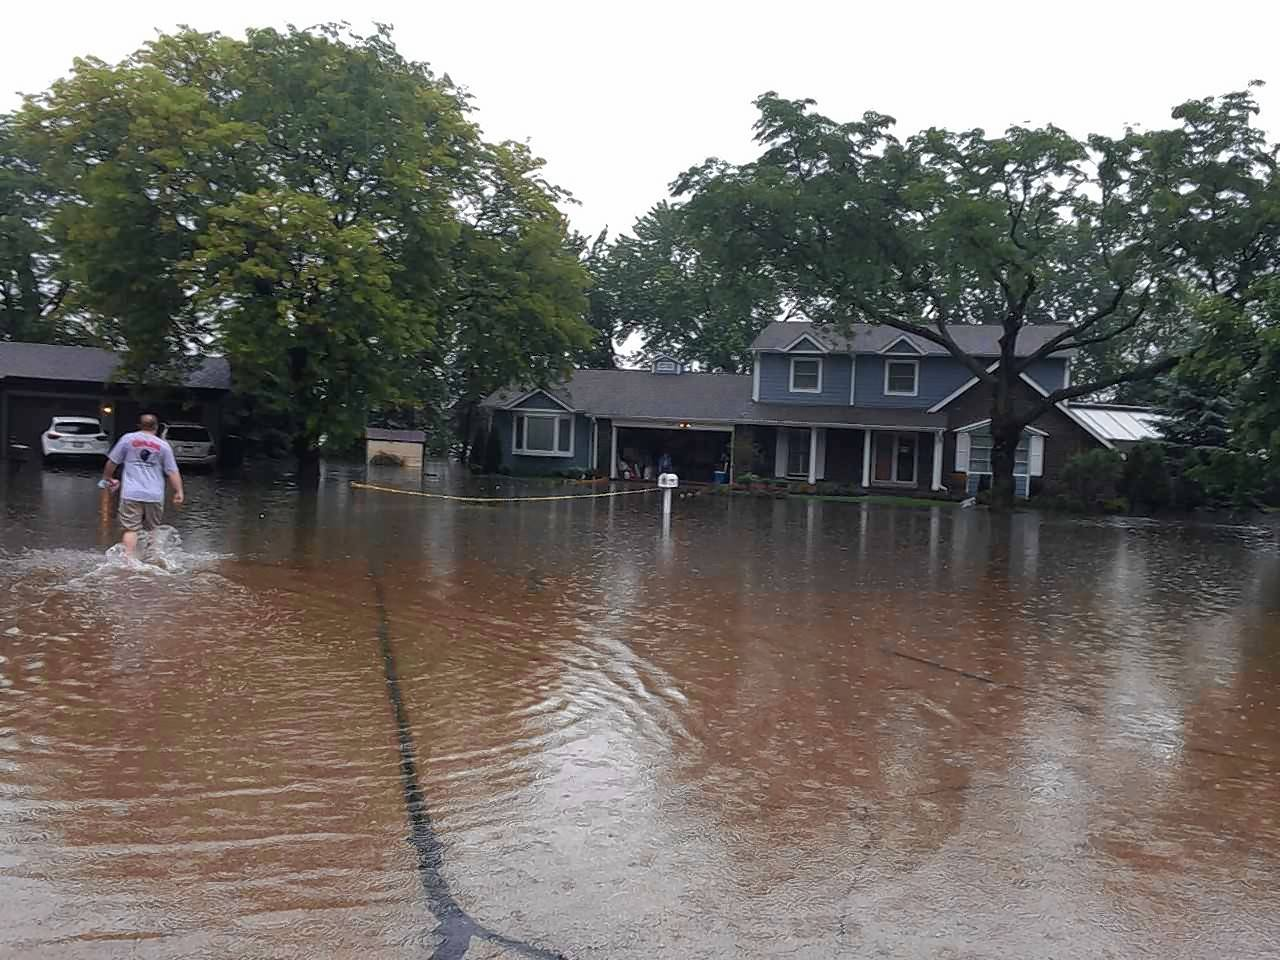 The home of Prospect Heights Mayor Nick Helmer wasn't spared from the flooding that hit the city over the weekend after heavy downpours Saturday and Sunday.